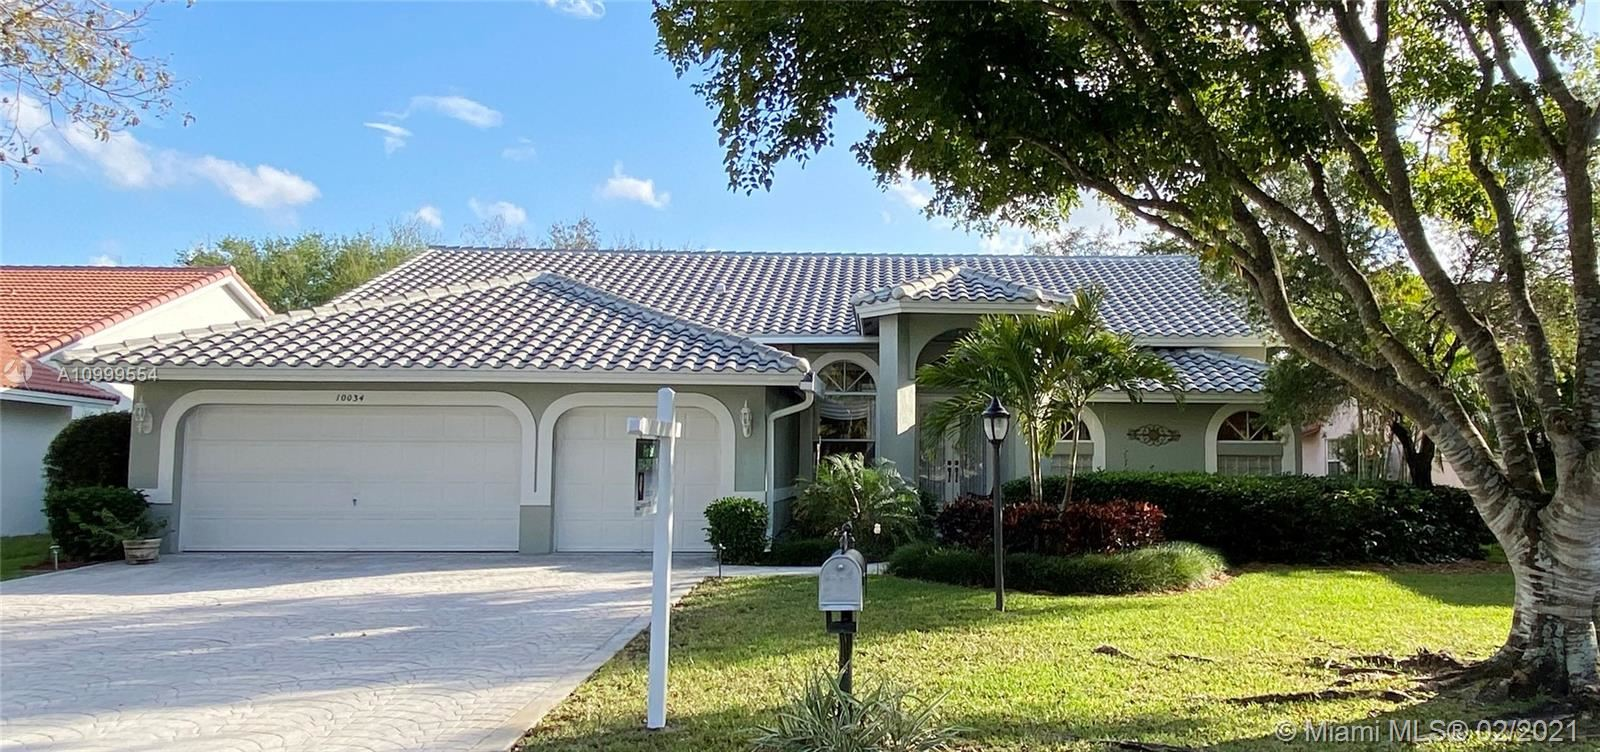 10034 NW 56th Ct, Coral Springs, FL 33076 - #: A10999554